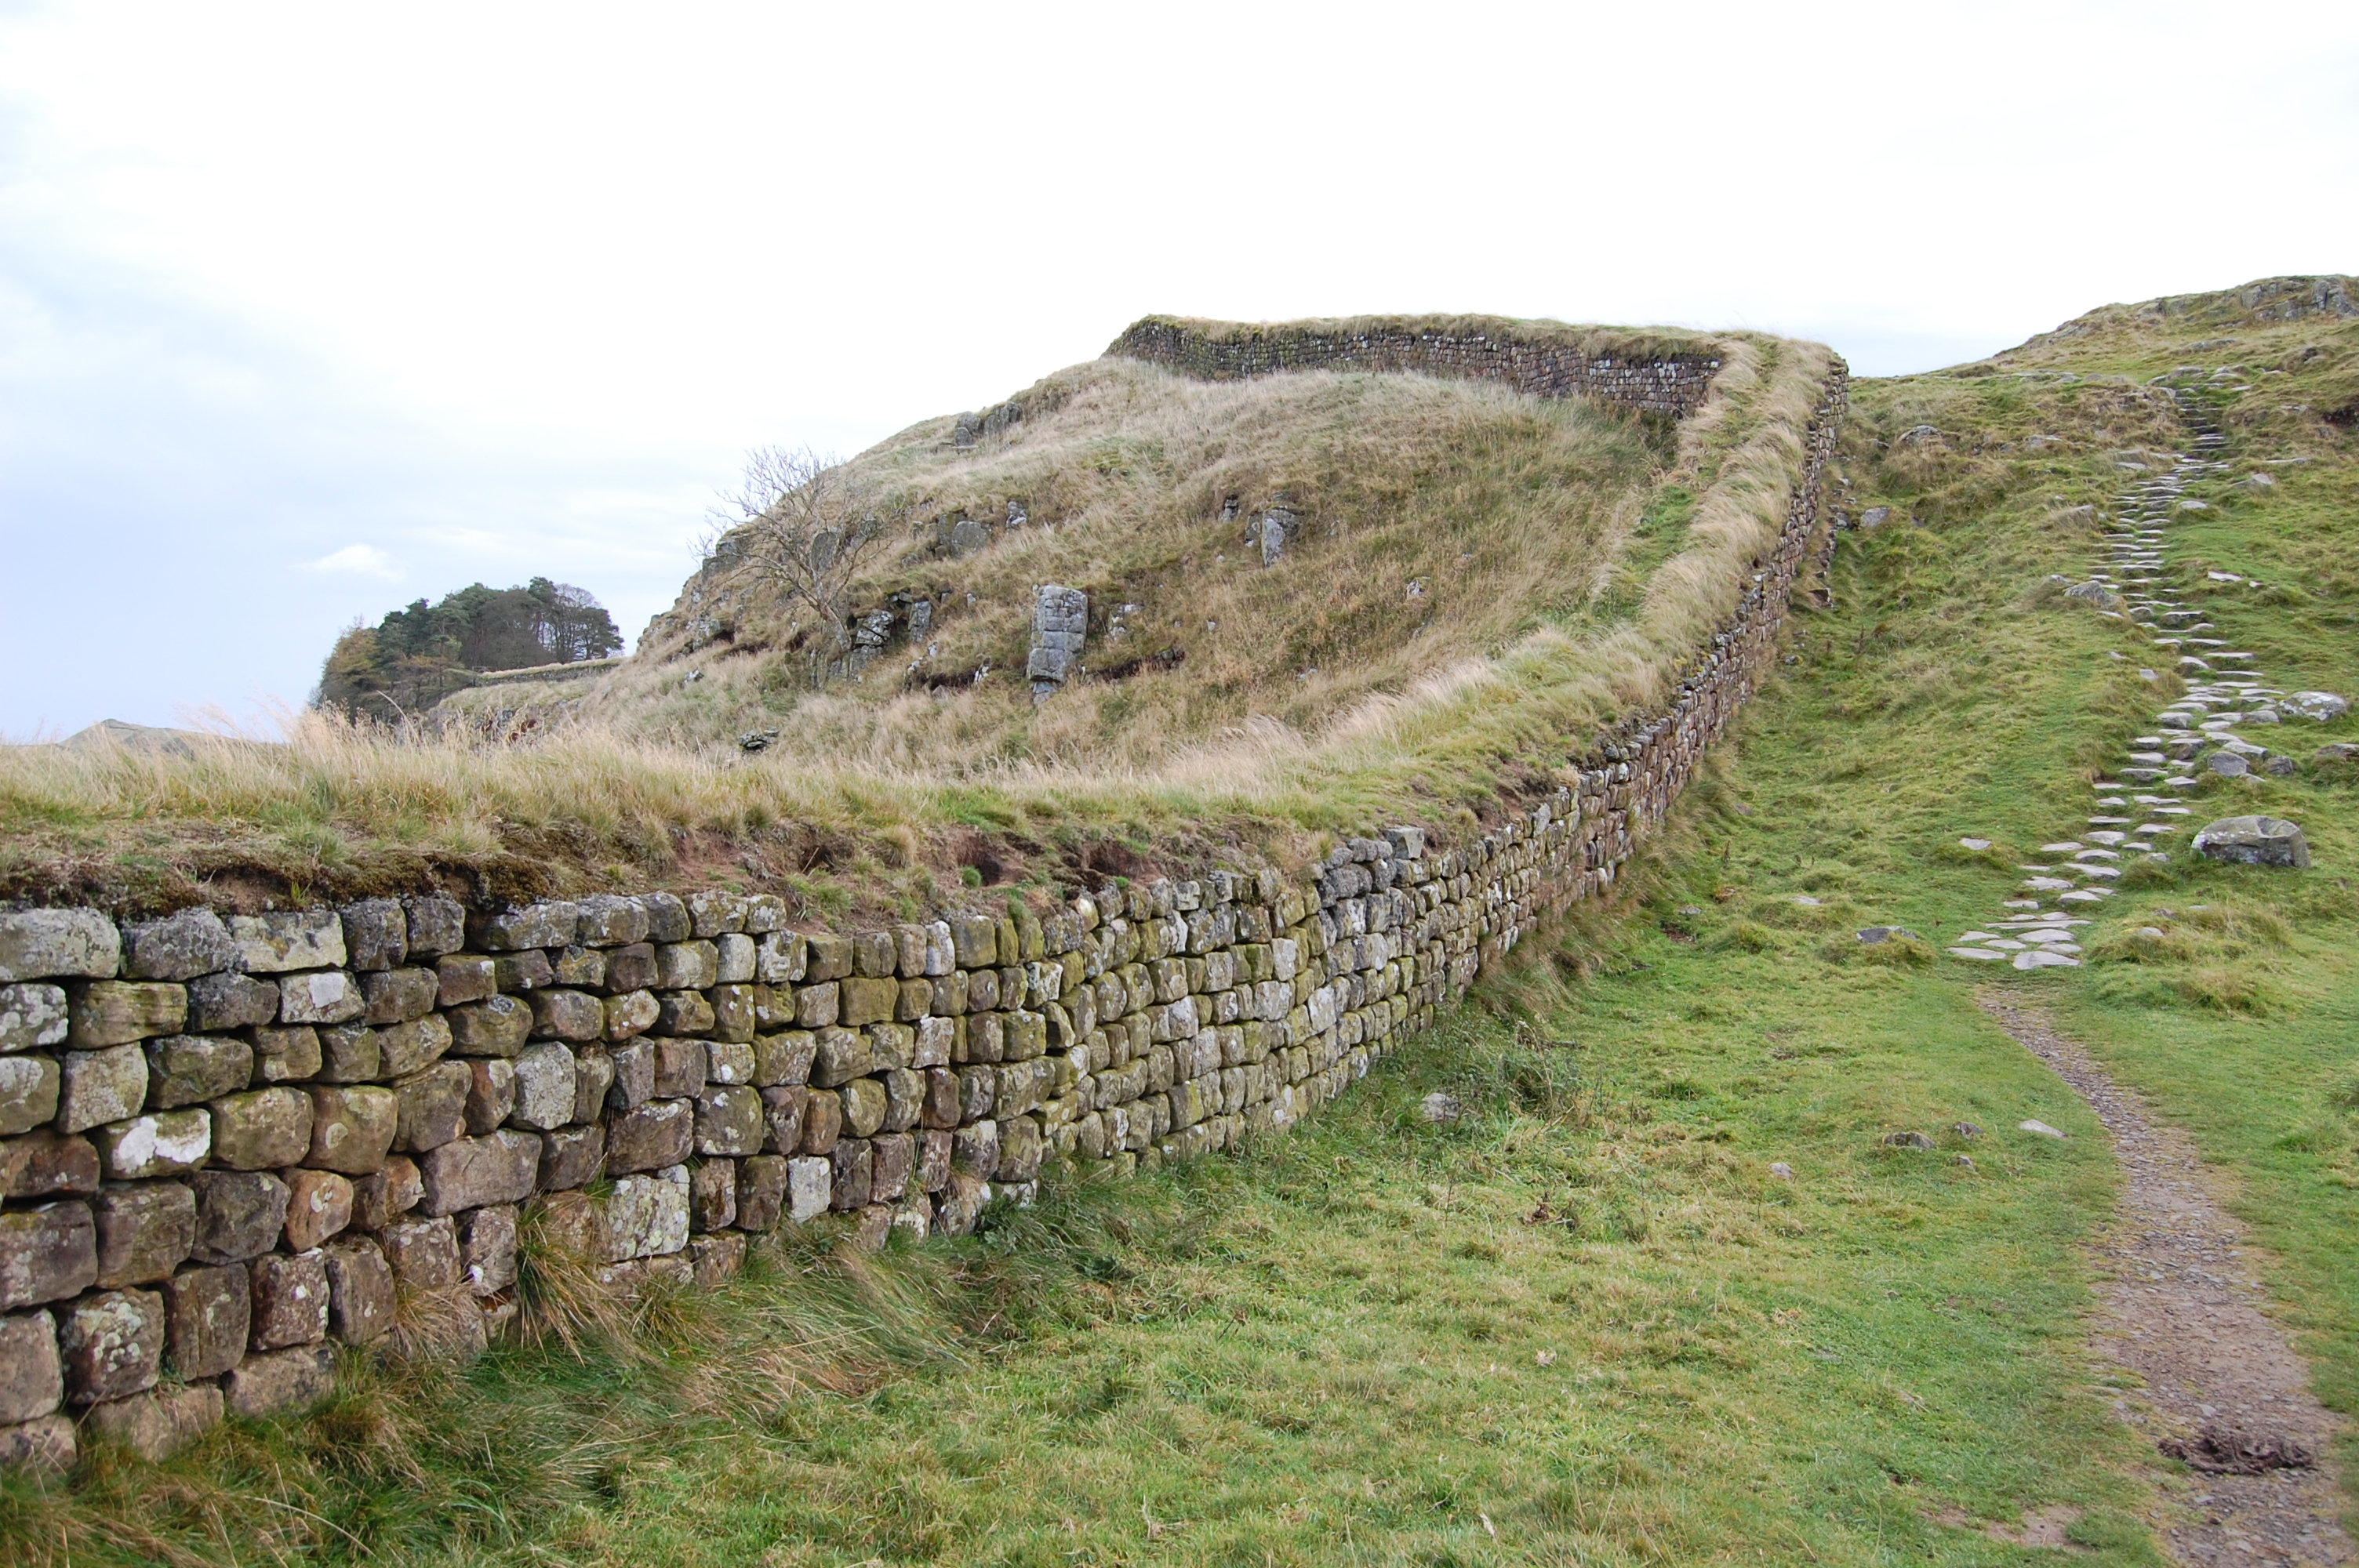 hadrian s wall The wall, complemented by a sophisticated system of outposts and coastal watch stations, offers a remarkable glimpse of ancient society in addition to housing one of the largest concentrations of roman soldiers anywhere in the empire's provinces, hadrian's frontier system was home to an incredibly cosmopolitan array of.